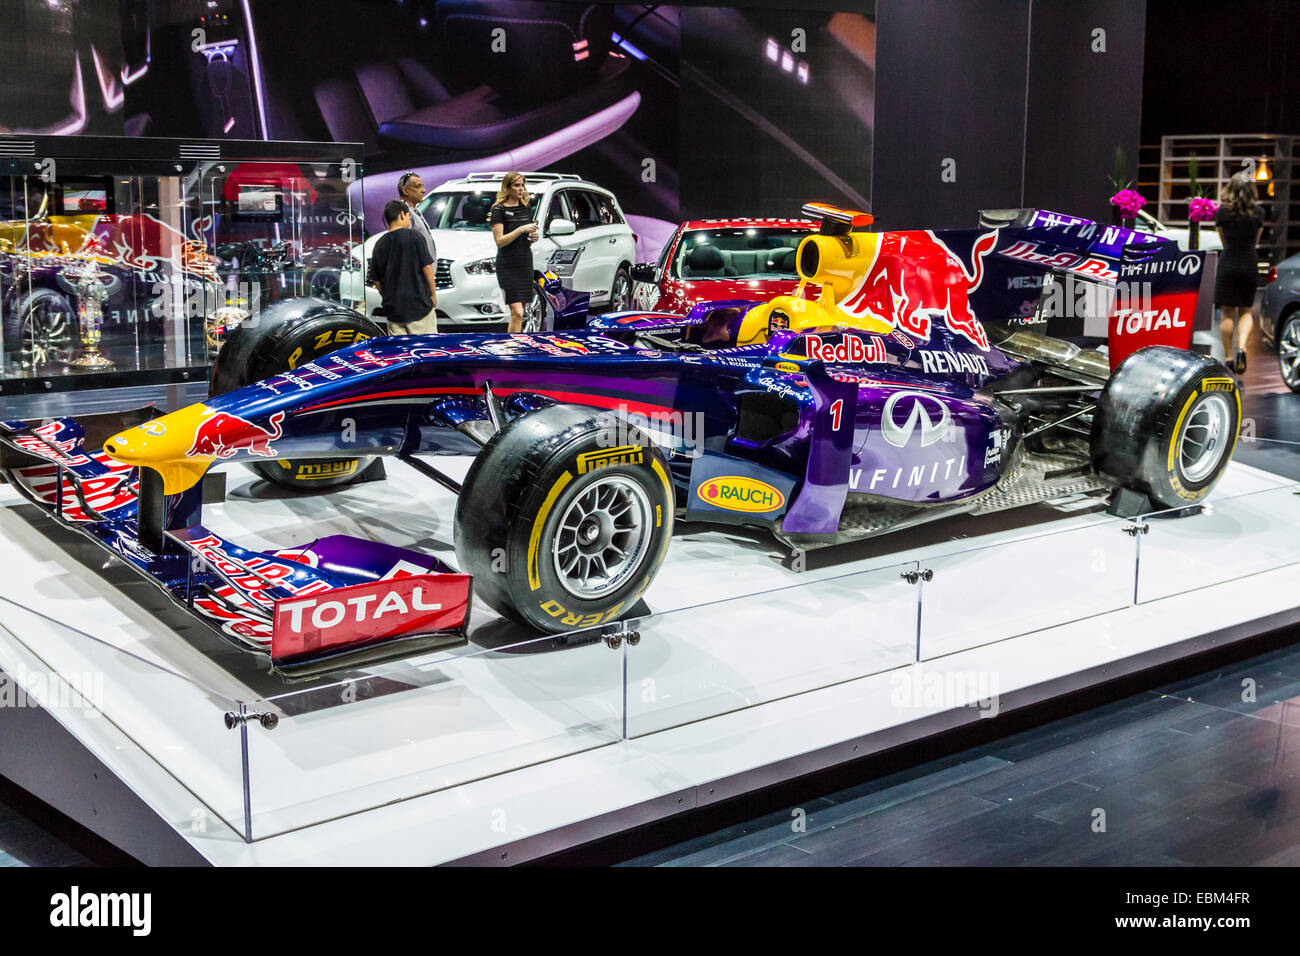 une voiture de formule 1 red bull l 39 infinity au 2014 los angeles auto show banque d 39 images. Black Bedroom Furniture Sets. Home Design Ideas